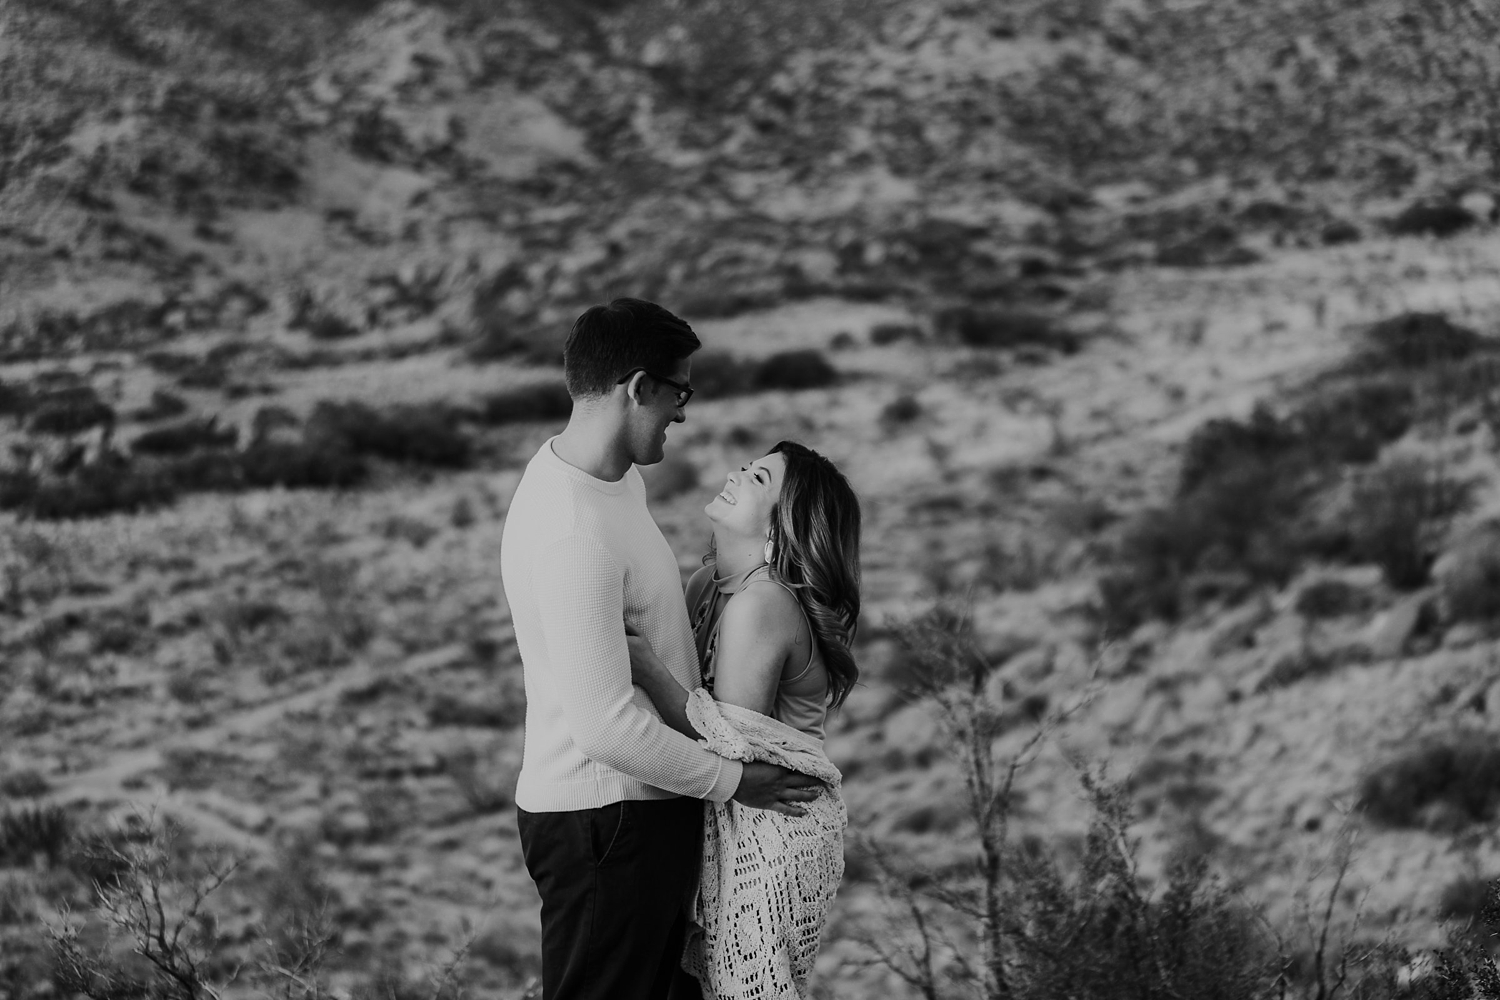 Alicia+lucia+photography+-+albuquerque+wedding+photographer+-+santa+fe+wedding+photography+-+new+mexico+wedding+photographer+-+new+mexico+engagement+-+albuquerque+engagement+-+spring+new+mexico+engagement_0006.jpg